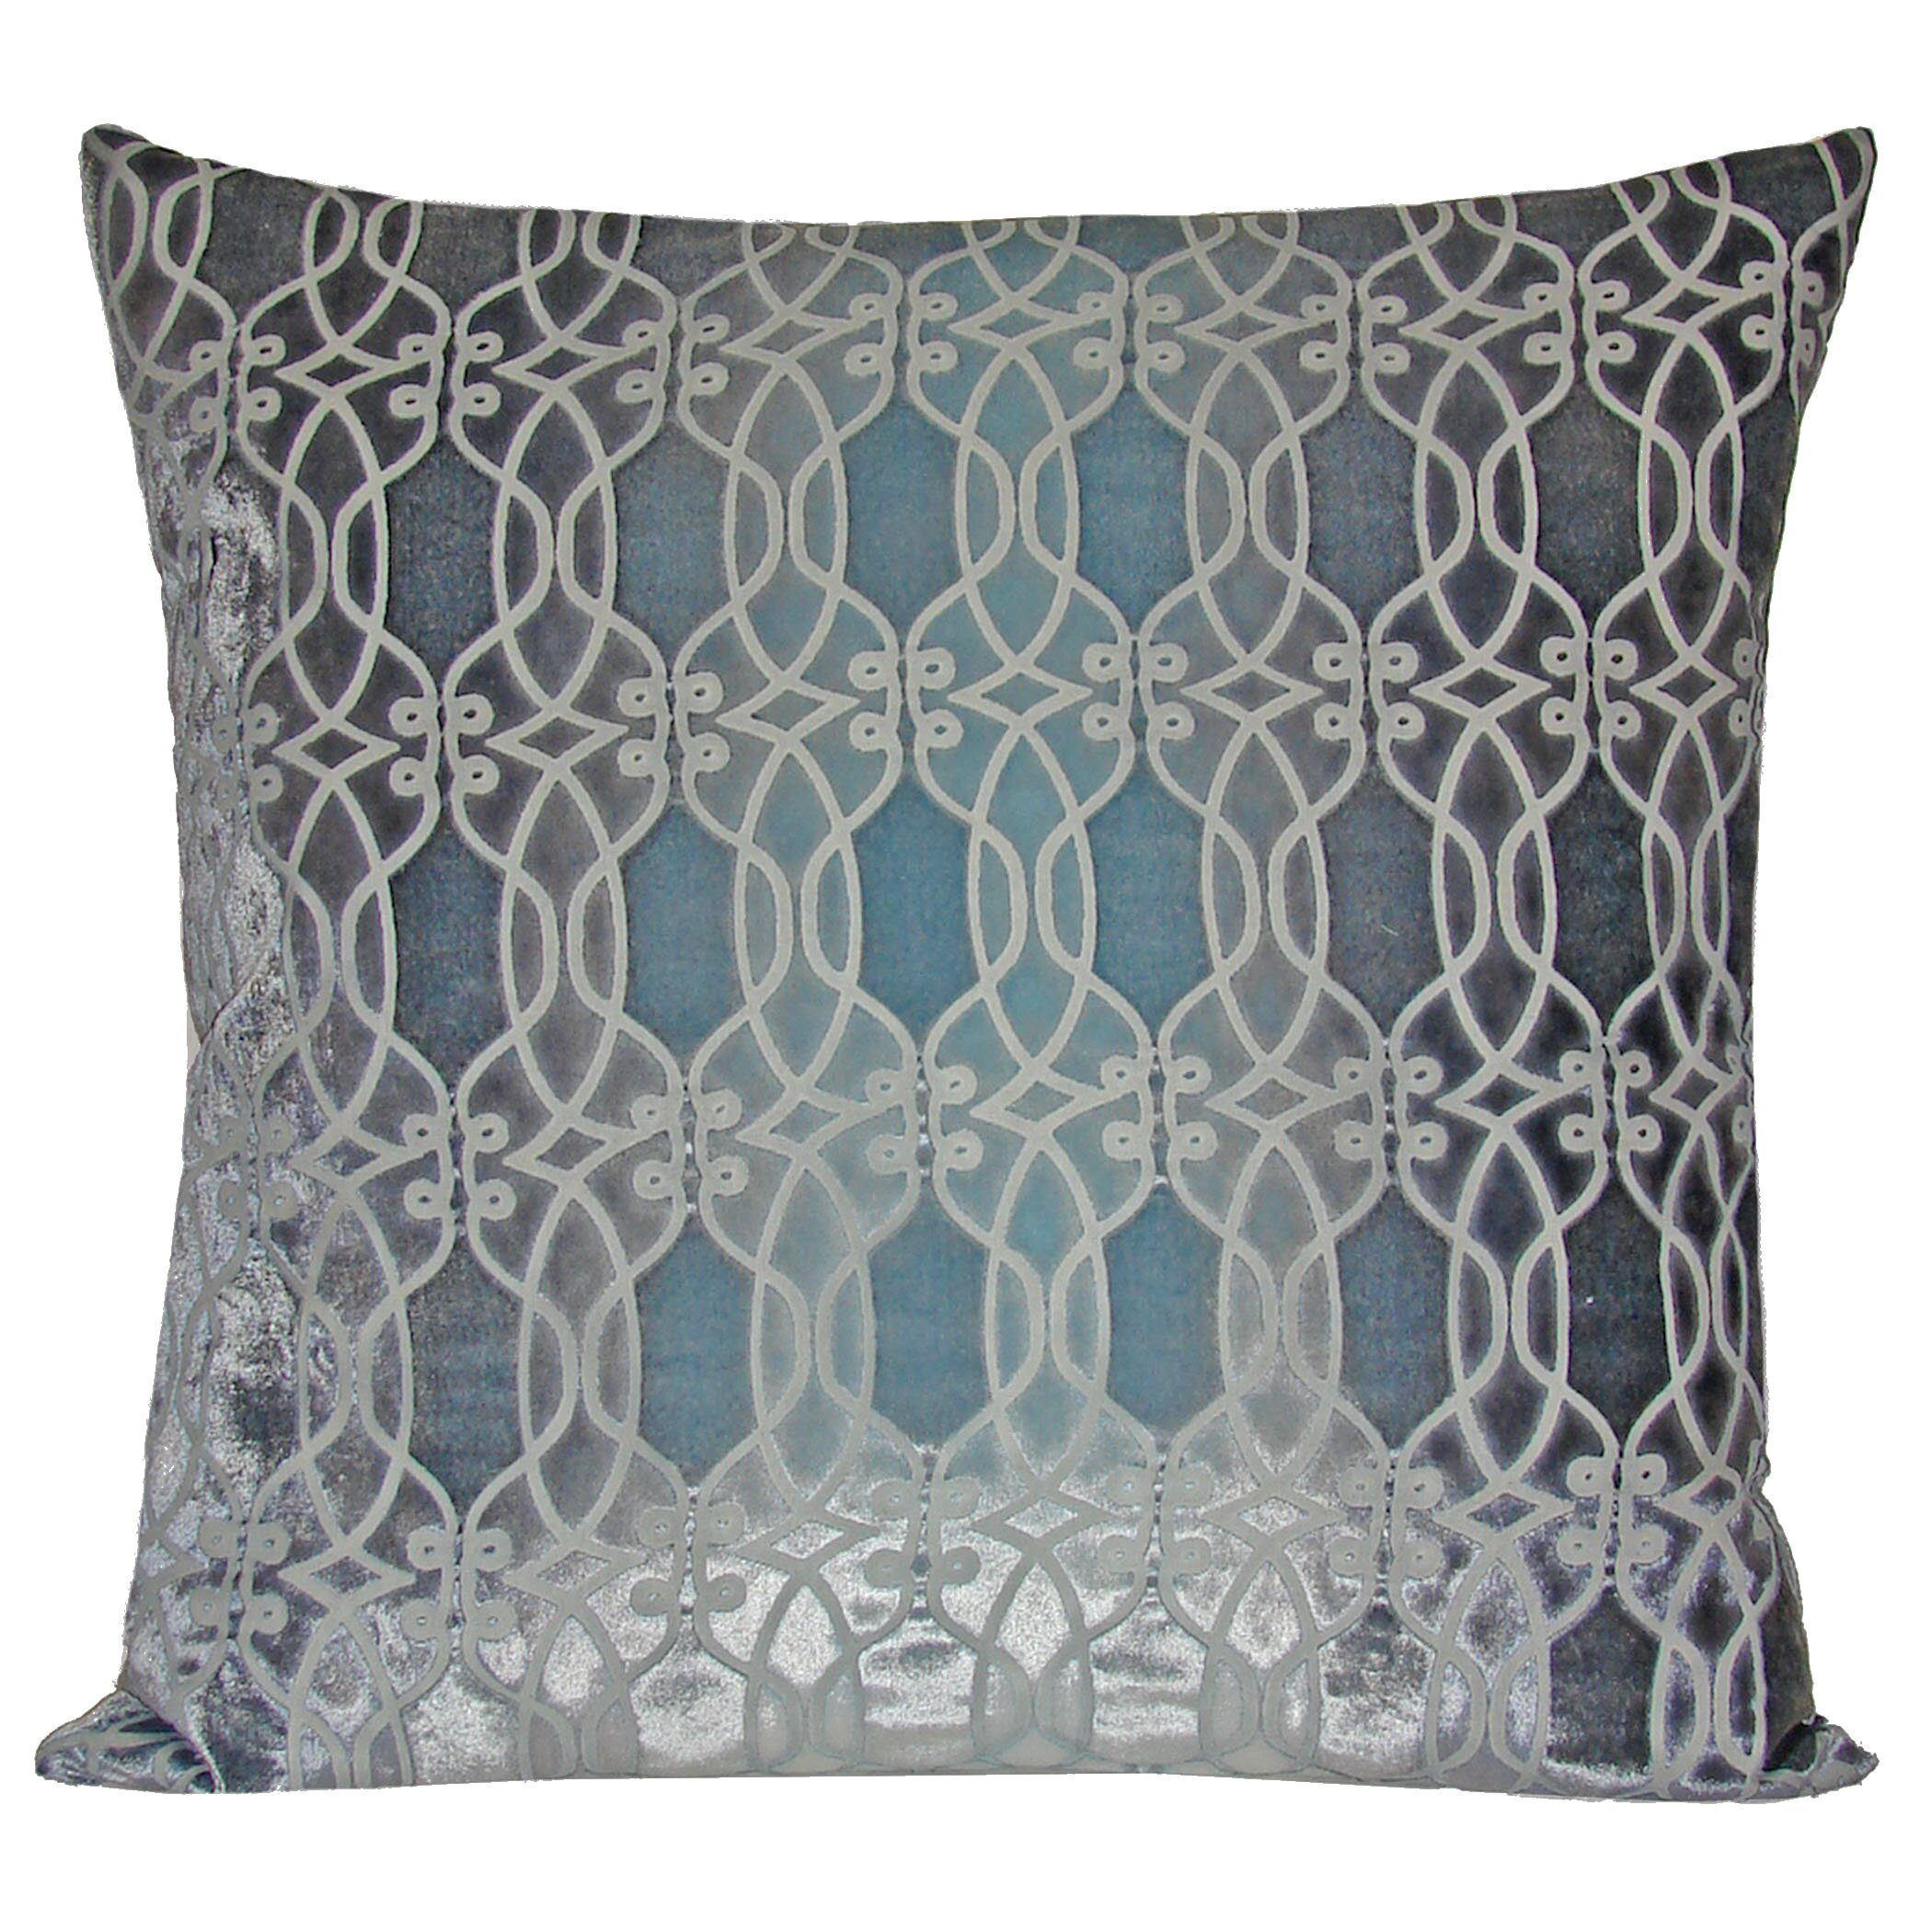 Decorative Pillow Wayfair : Kevin O Brien Studio Links Throw Pillow Wayfair